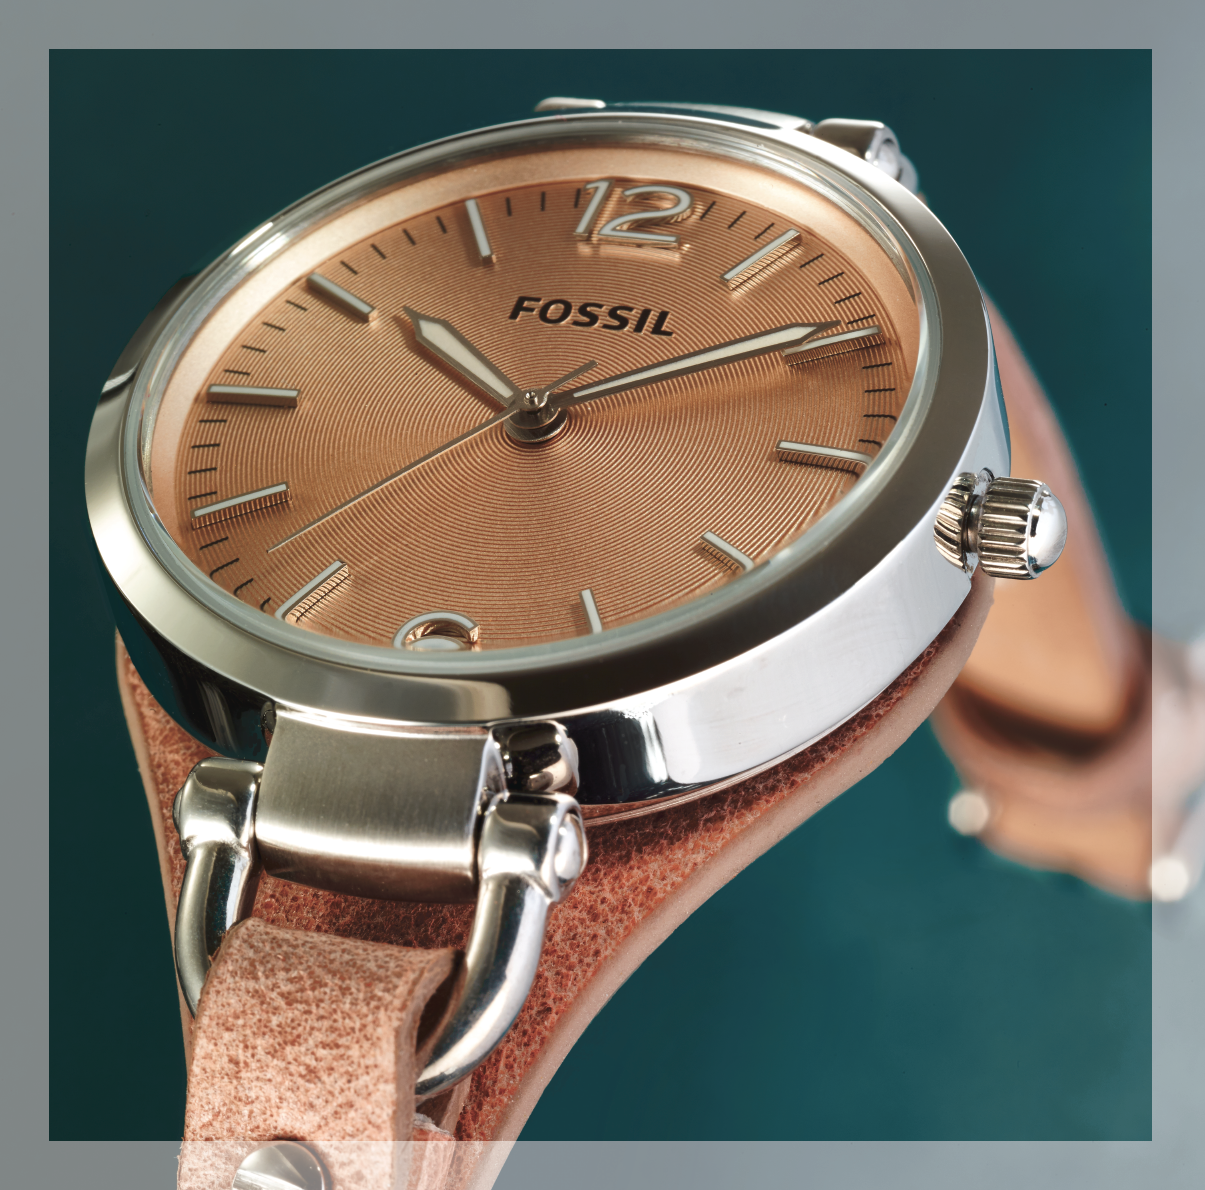 Fossil watch for Her - Available at selected Sterns stores   The ... 6dfdb22becb3